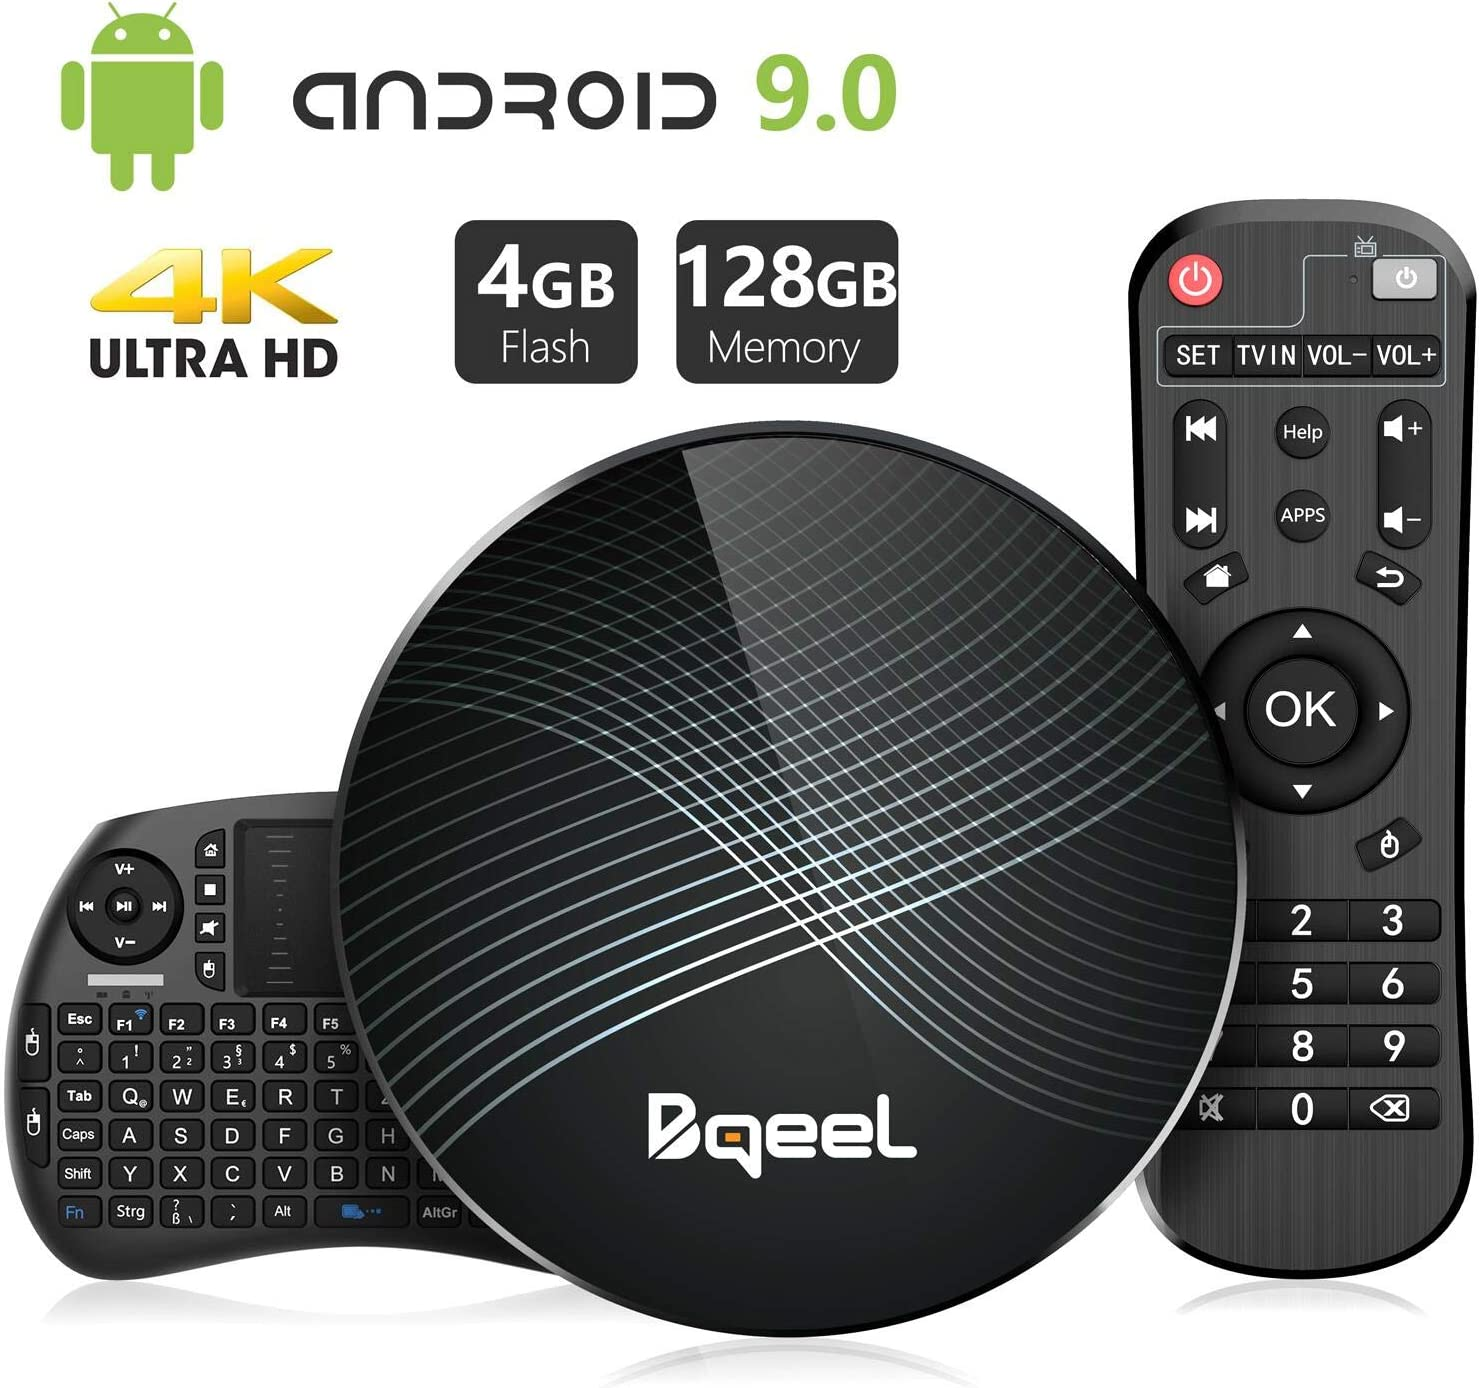 Última Versión-Bqeel Android 9.0 TV Box 【4G+128G】con Mini Teclado inalámbirco RK3328 Quad-Core 64bit Cortex-A53 Android TV Box ,Wi-Fi-Dual 2.4GHz/5GHz, Bluetooth 4.0 , 4K*2K UHD Smart TV Box